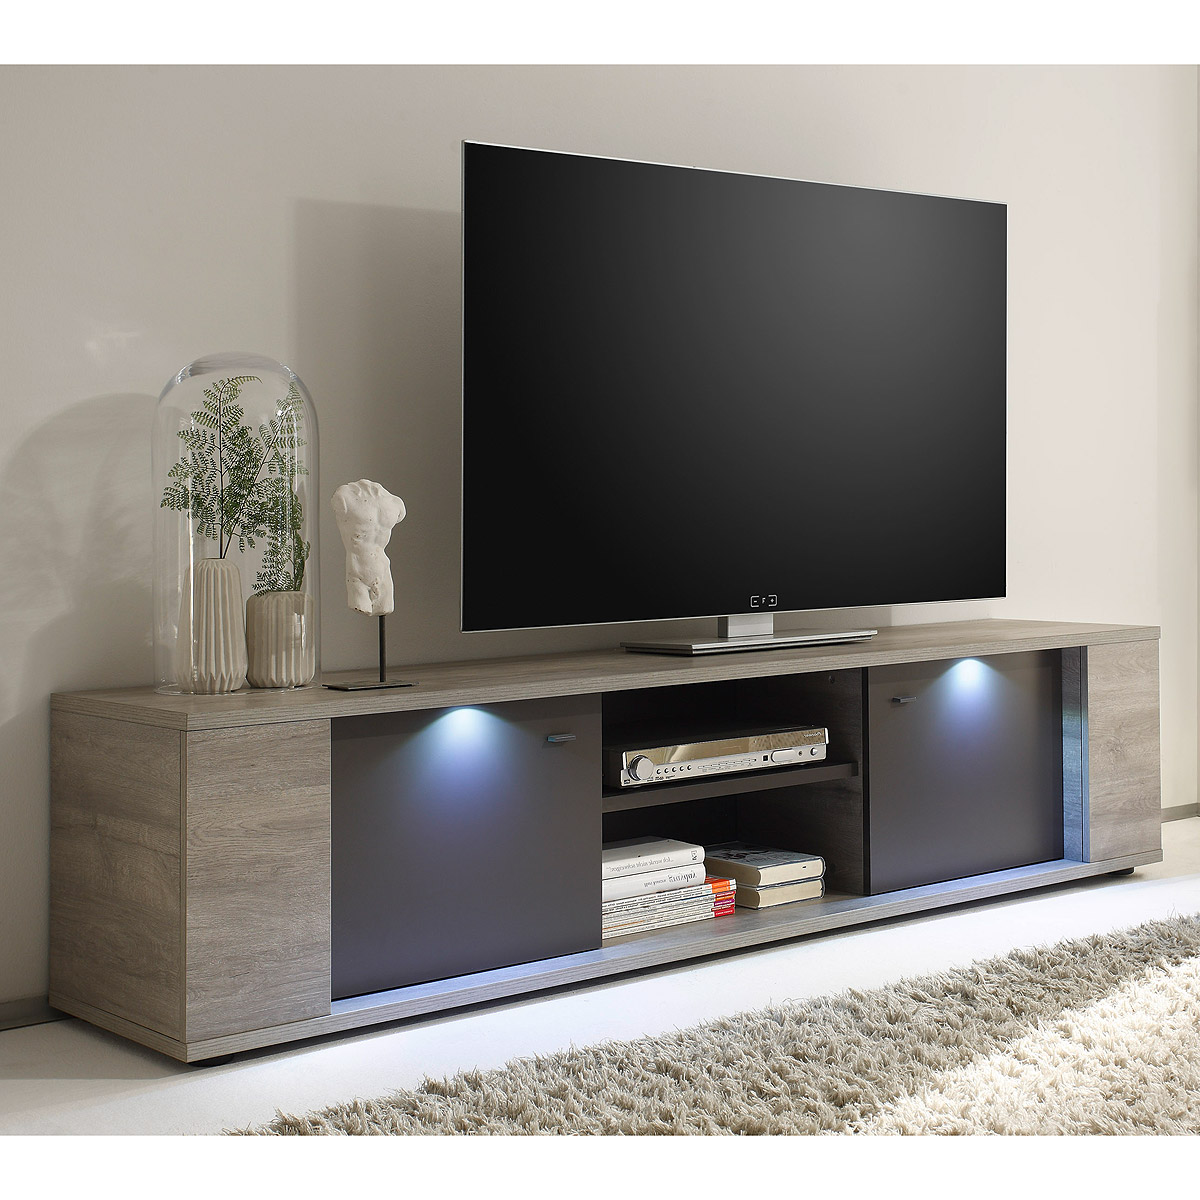 tv element sidney lowboard kommode eiche grau anthrazit matt inkl led 190 cm eur 317 95. Black Bedroom Furniture Sets. Home Design Ideas